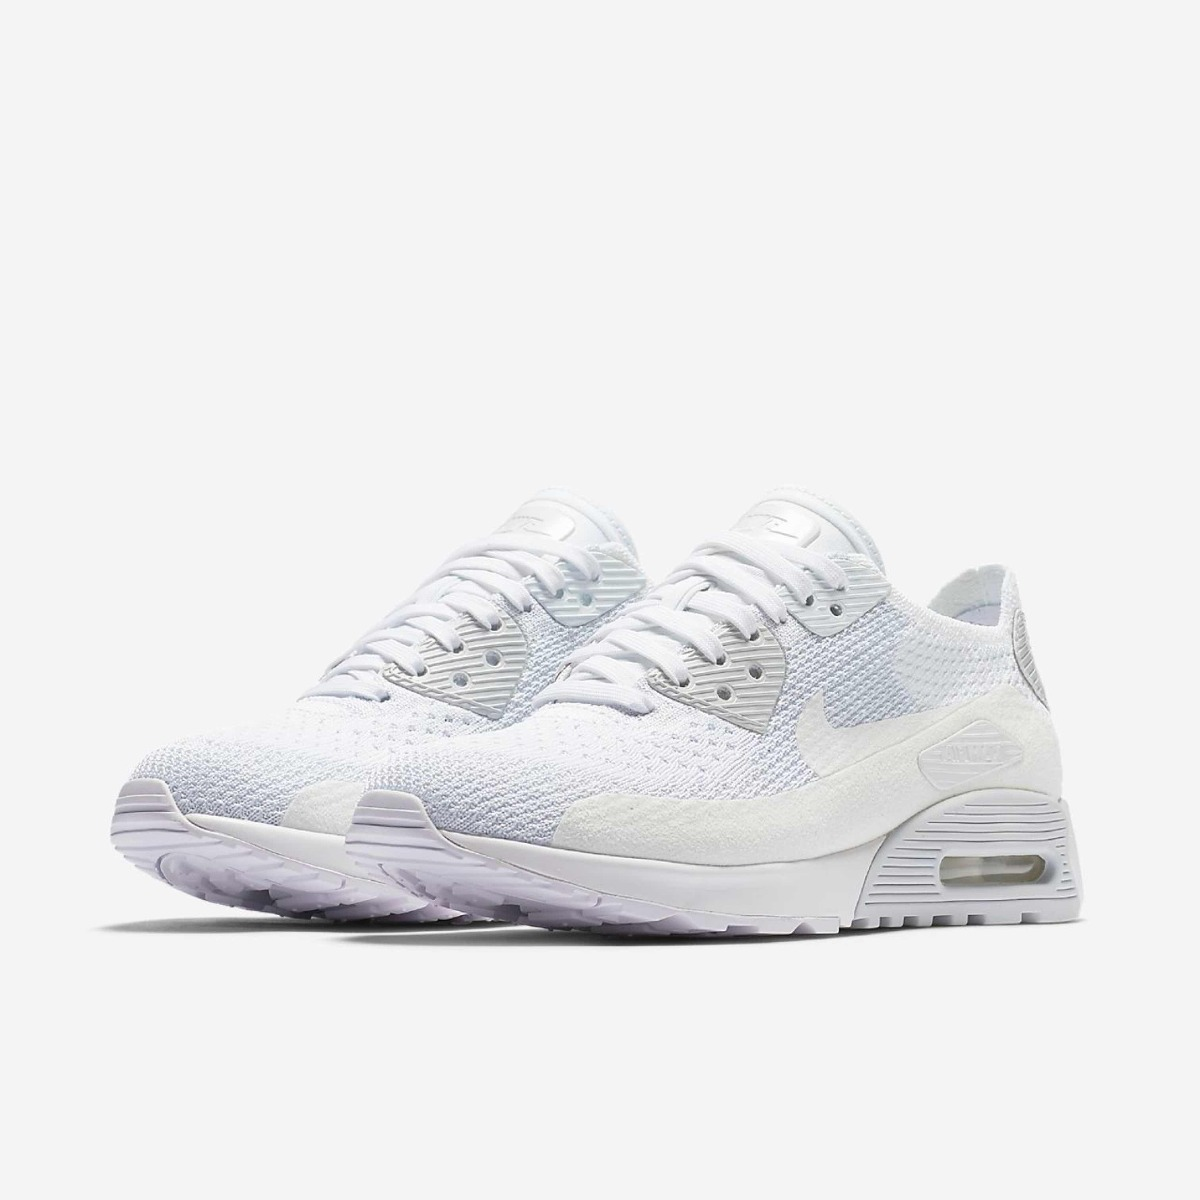 newest 89653 37c0d oferta!!! excelentes nike air max 90 ultra 2.0 flyknit!!! Cargando zoom.